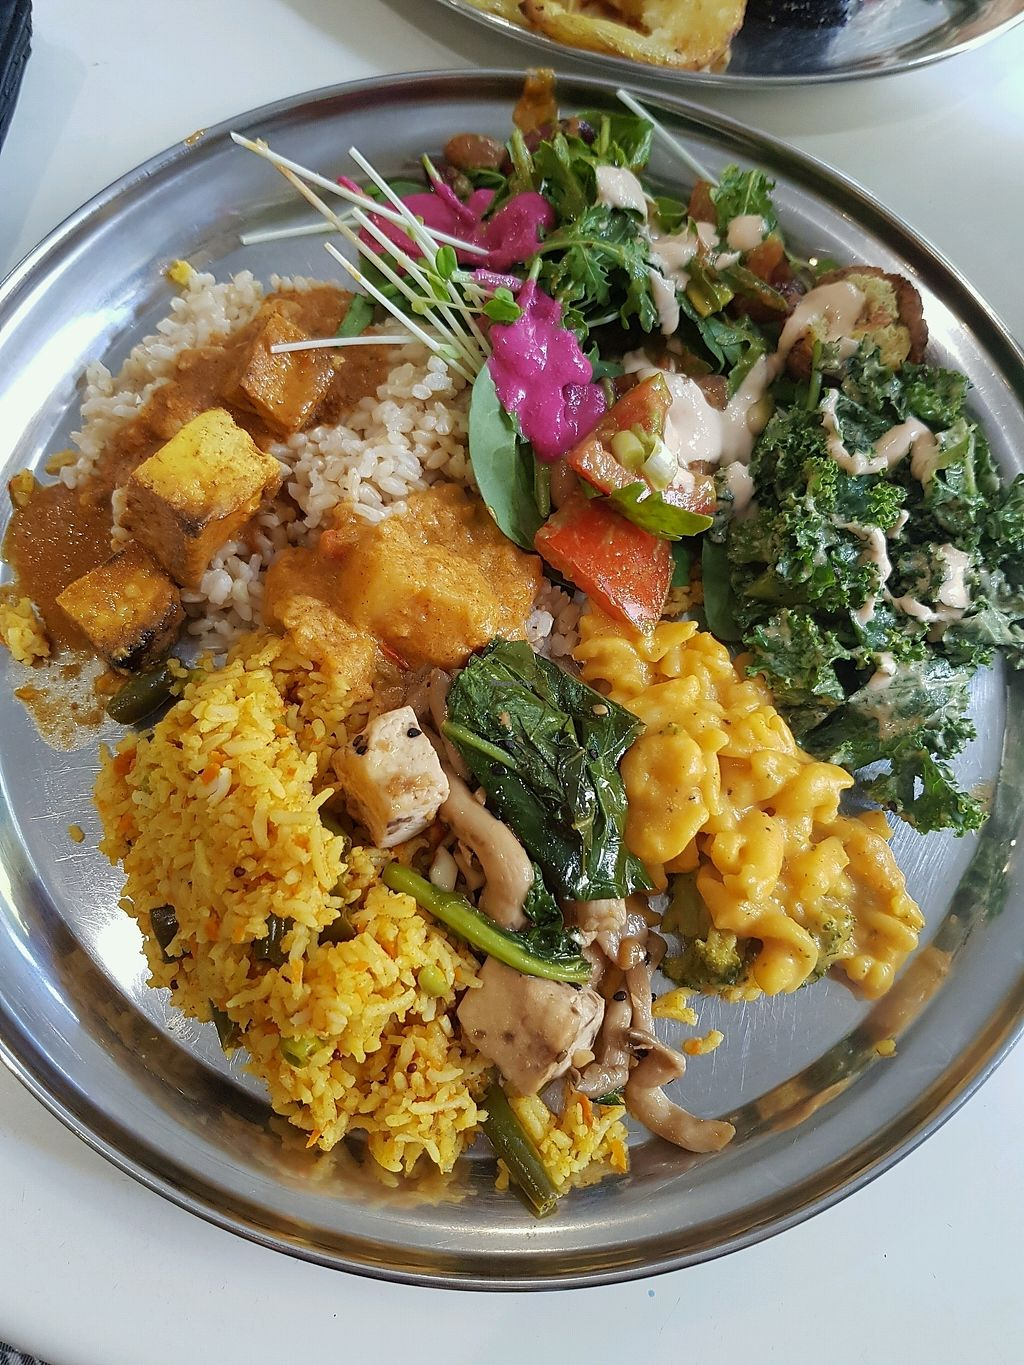 """Photo of OM Vegan Kitchen  by <a href=""""/members/profile/VeganAssass1n"""">VeganAssass1n</a> <br/>lunch plate from buffet <br/> February 27, 2018  - <a href='/contact/abuse/image/80628/364303'>Report</a>"""